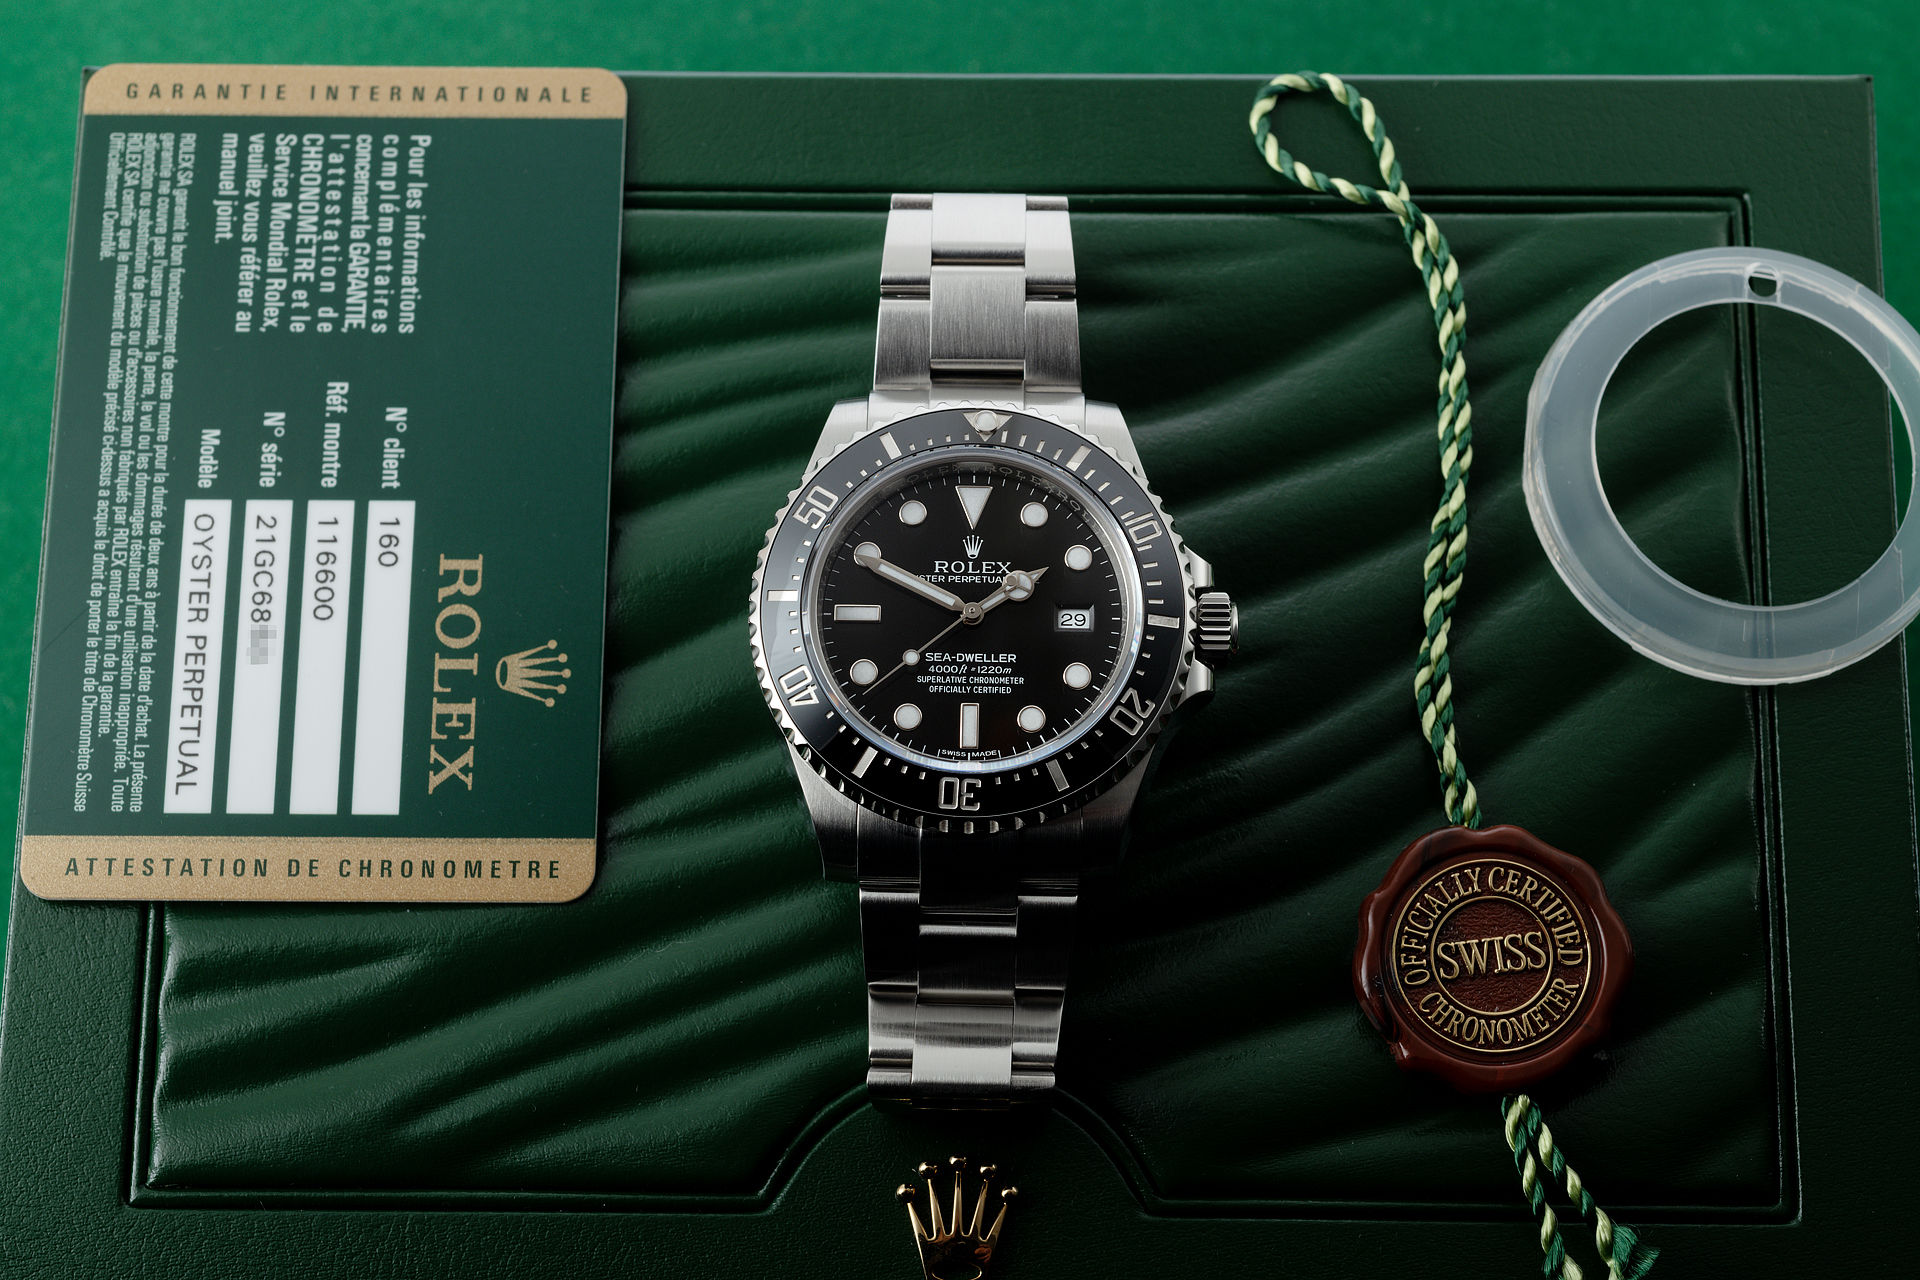 ref 116600 | 'Produced for 3 Years' | Rolex Sea-Dweller 4000